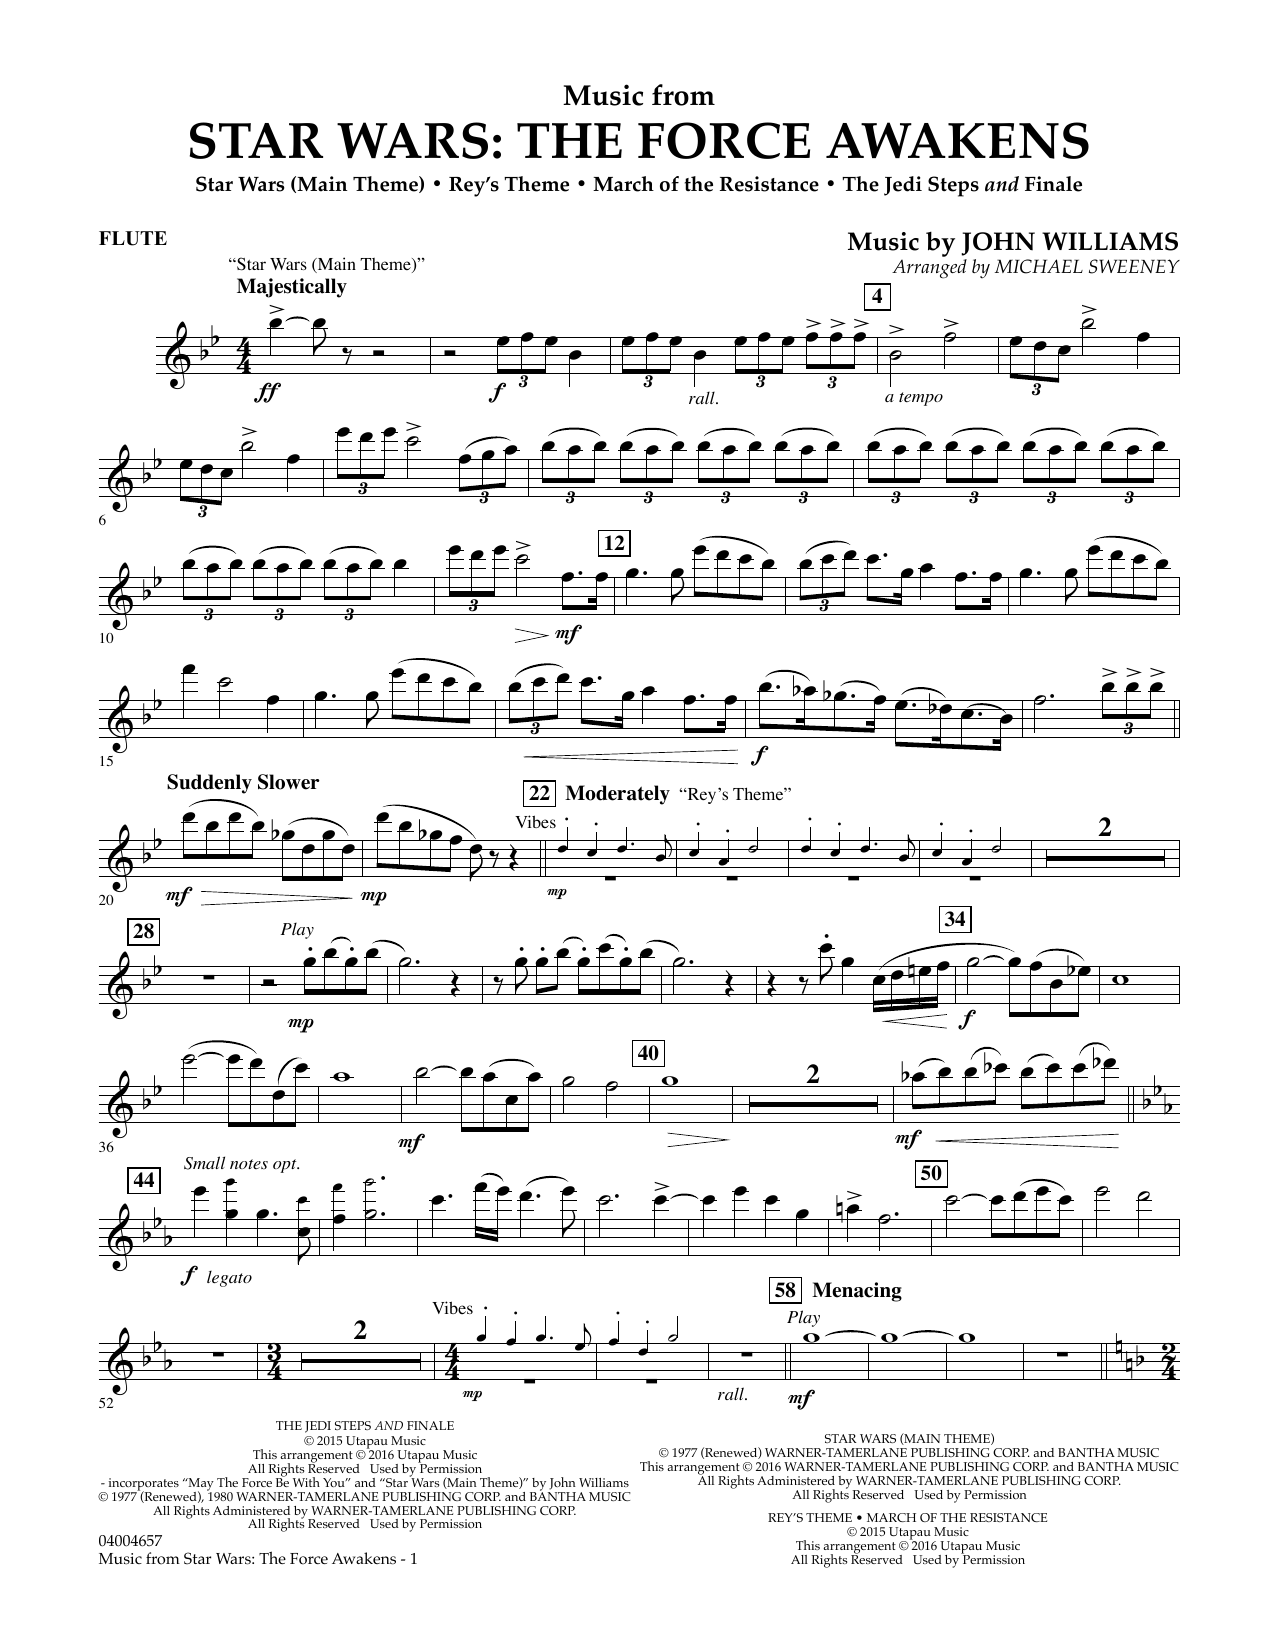 How To Play The Flute Flute Music Notes Sheet Chords - Music from star wars the force awakens flute sheet music at